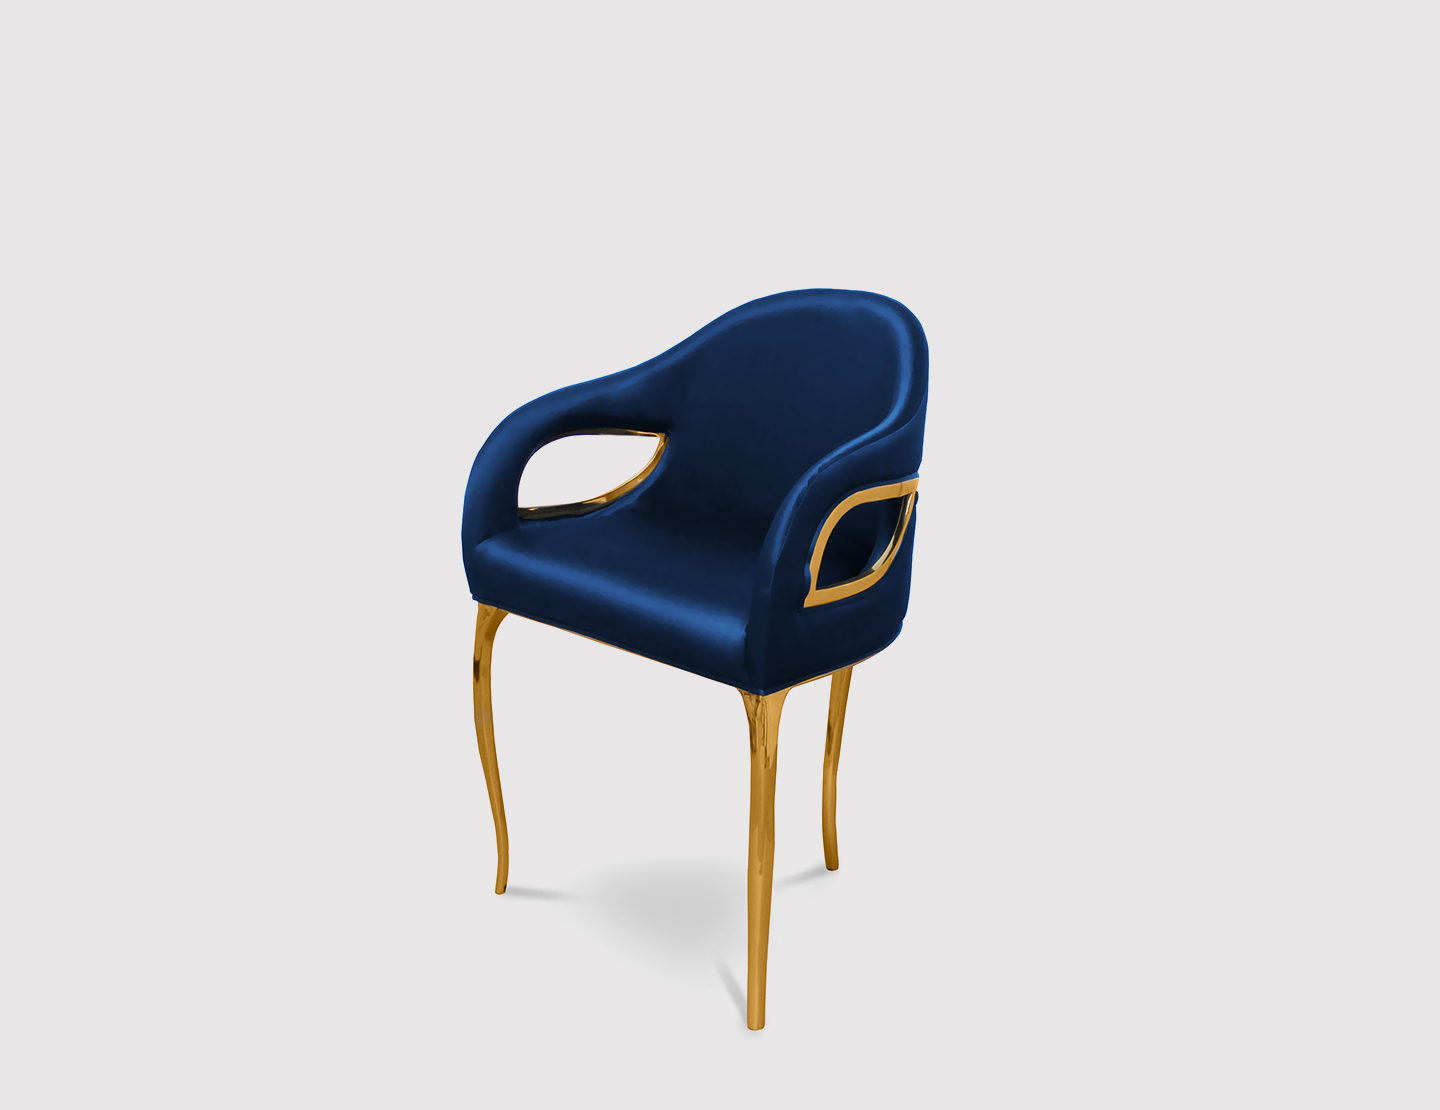 Chandra Dining Chair Luxury Dining Chair By Koket